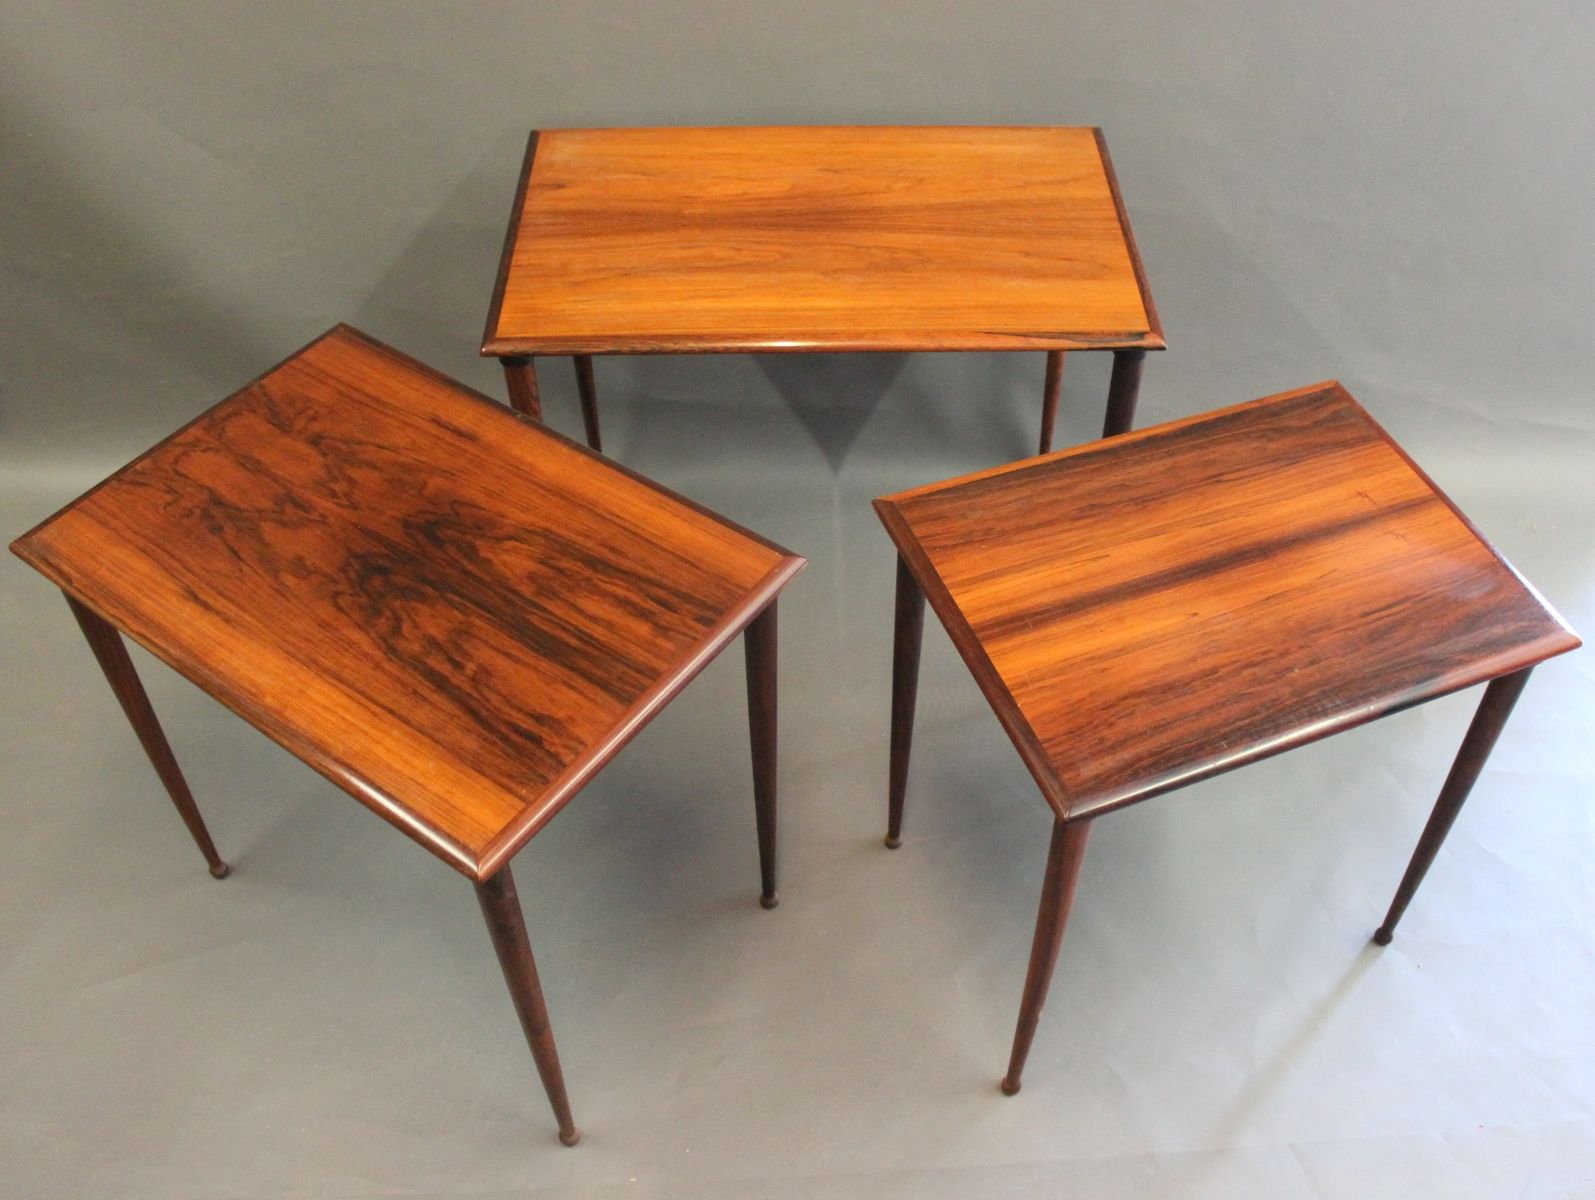 Amazing photo of Rosewood Nesting Tables from BC Møbler 1960s Set of 3 for sale at  with #AD4E1E color and 1594x1200 pixels